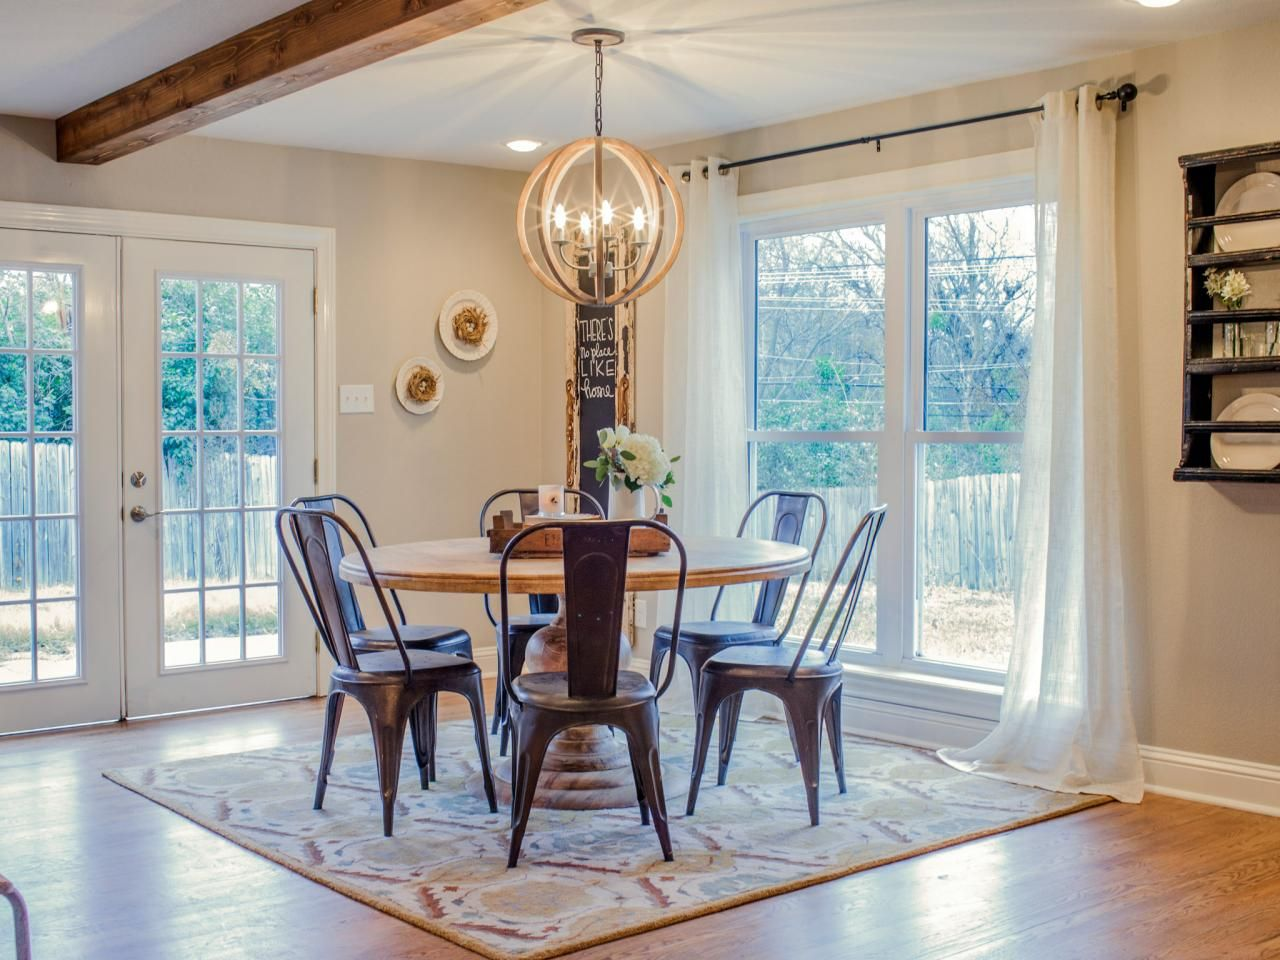 Fixer upper kitchen chandeliers - As Seen On Fixer Upper French Doors Floor To Ceiling Windows And A Stylized Chandelier Bring Loads Of Light Into The Breakfast Room